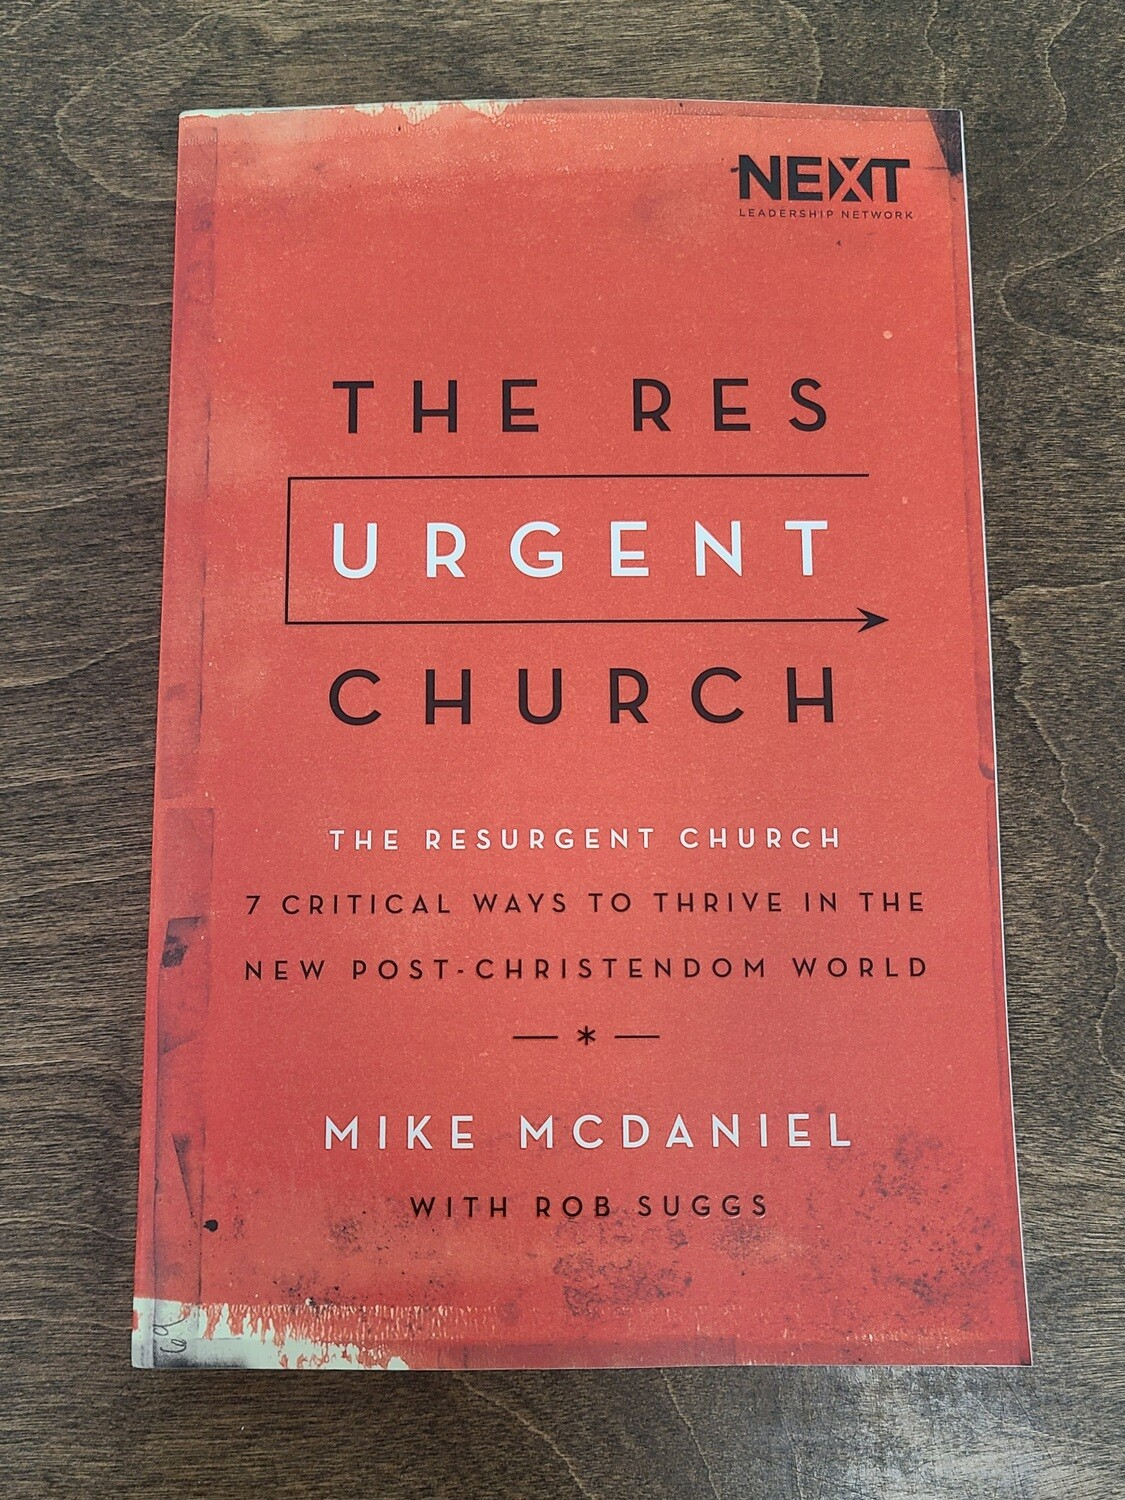 The Resurgent Church: 7 Critical Ways to Thrive in the New Post-Christiendom World by Mike McDaniel with Rob Suggs